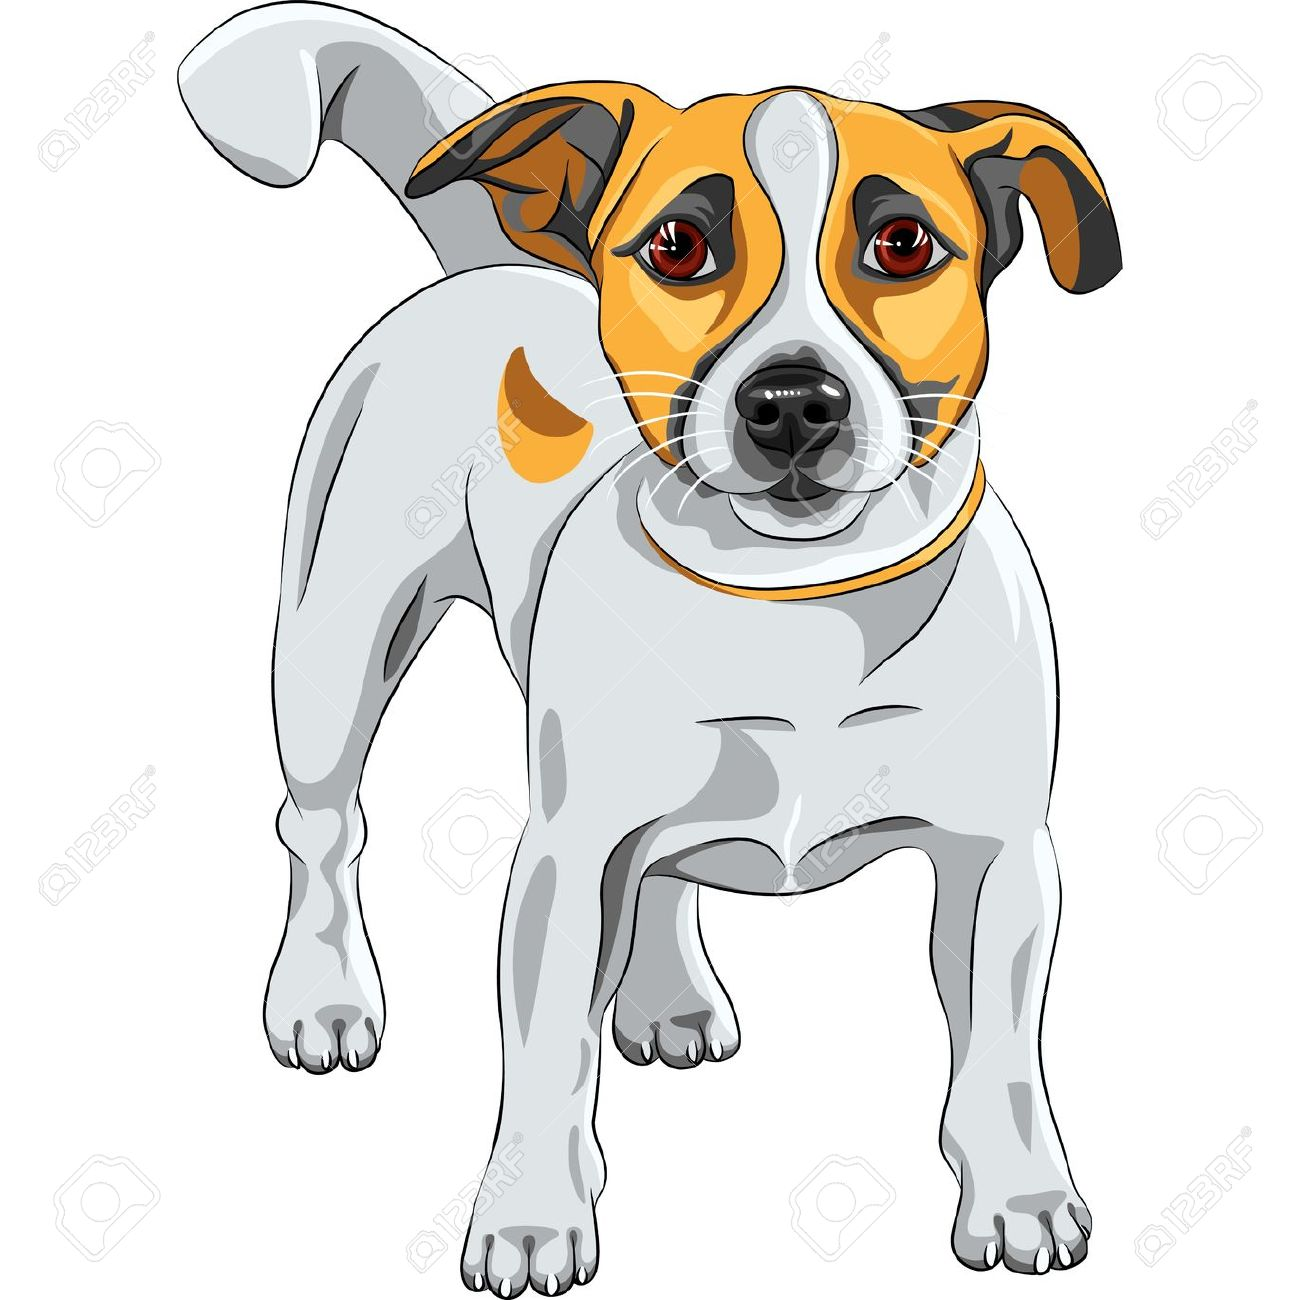 Jack Russell Terrier clipart #6, Download drawings